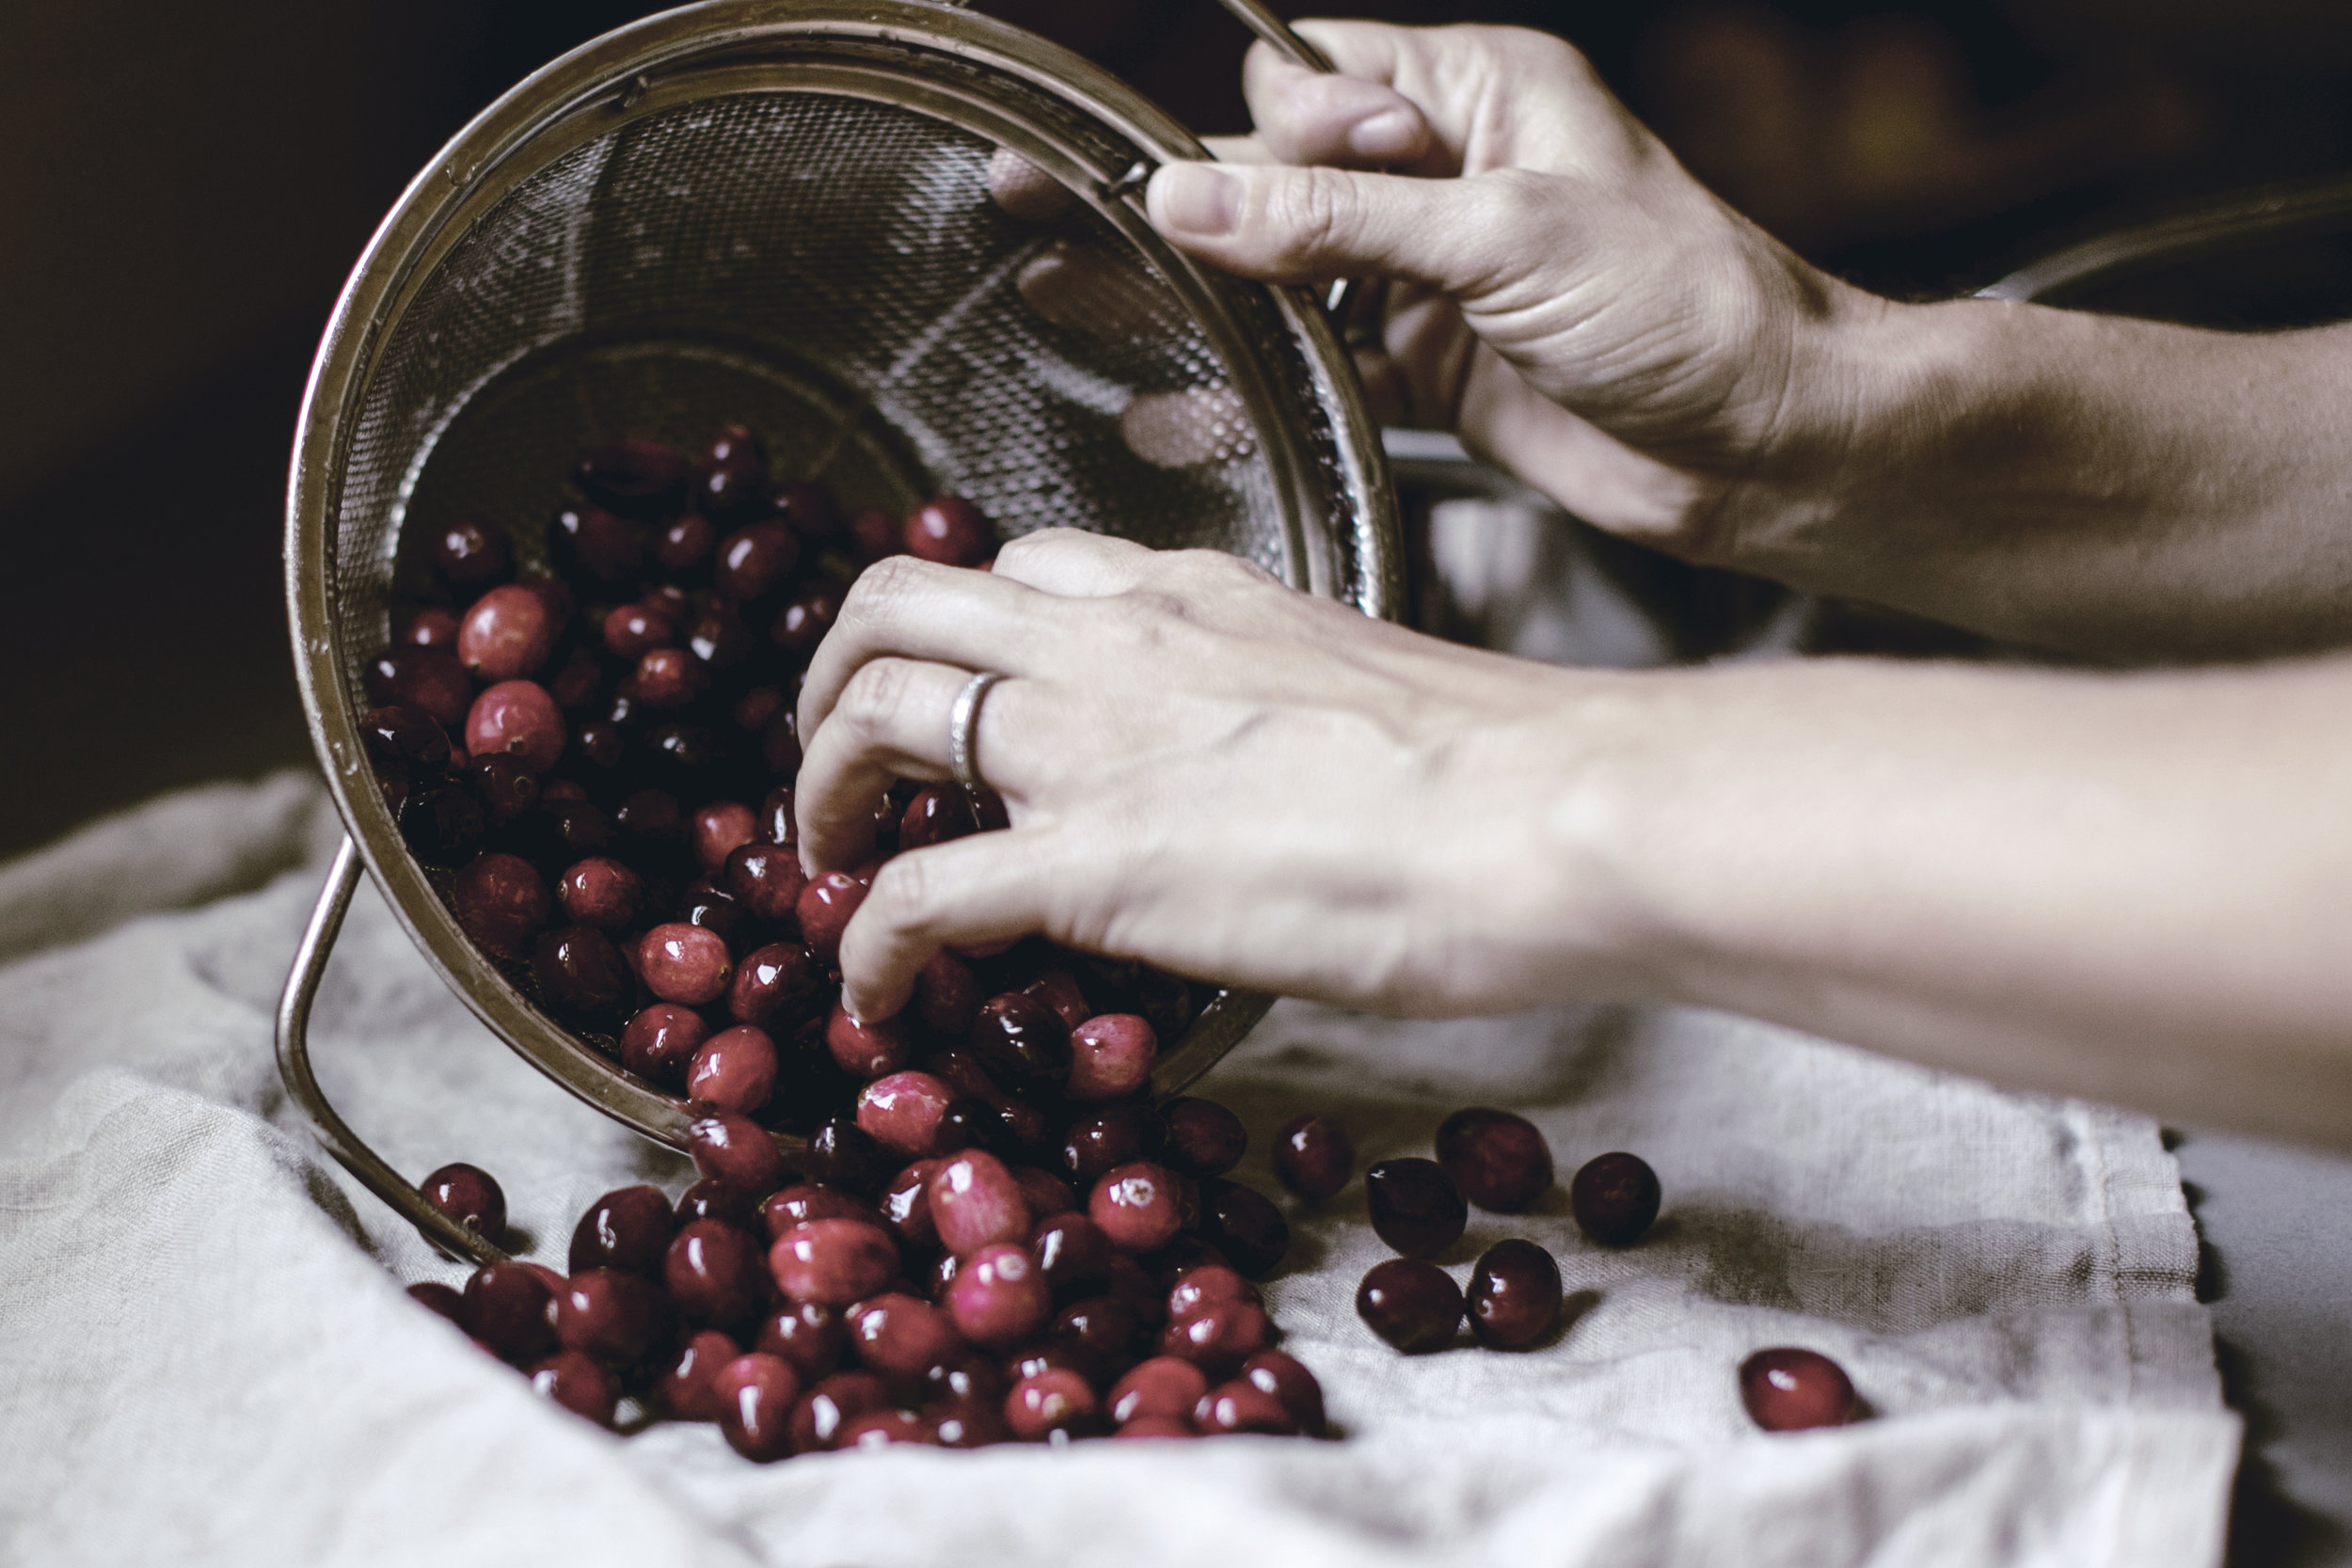 drying fresh cranberries